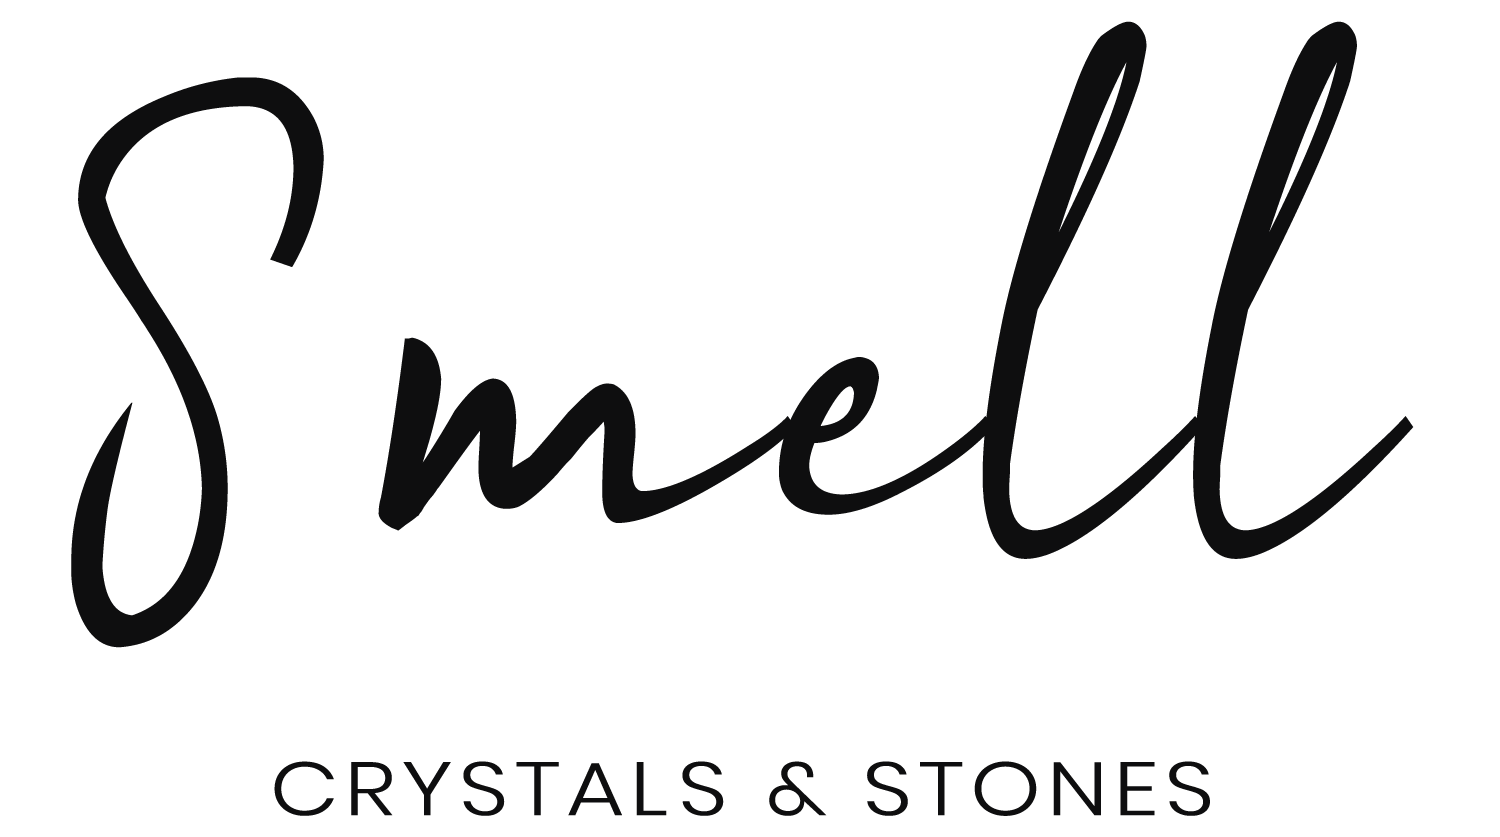 Smell – Crystals & Stones